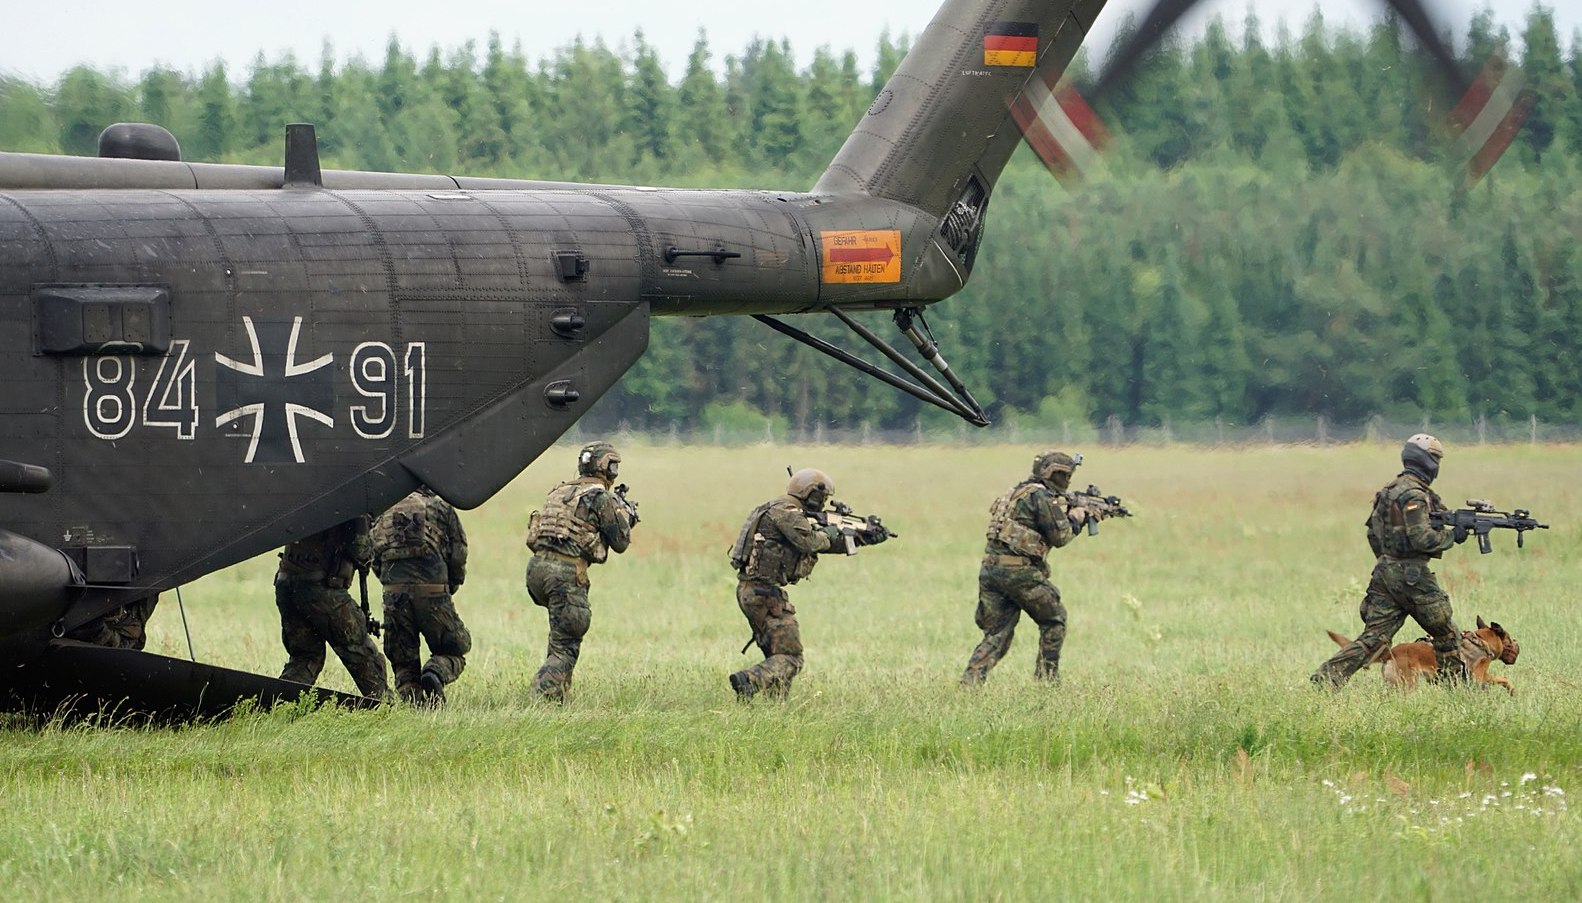 Germany defense minister orders partial dissolution of elite KSK commando unit